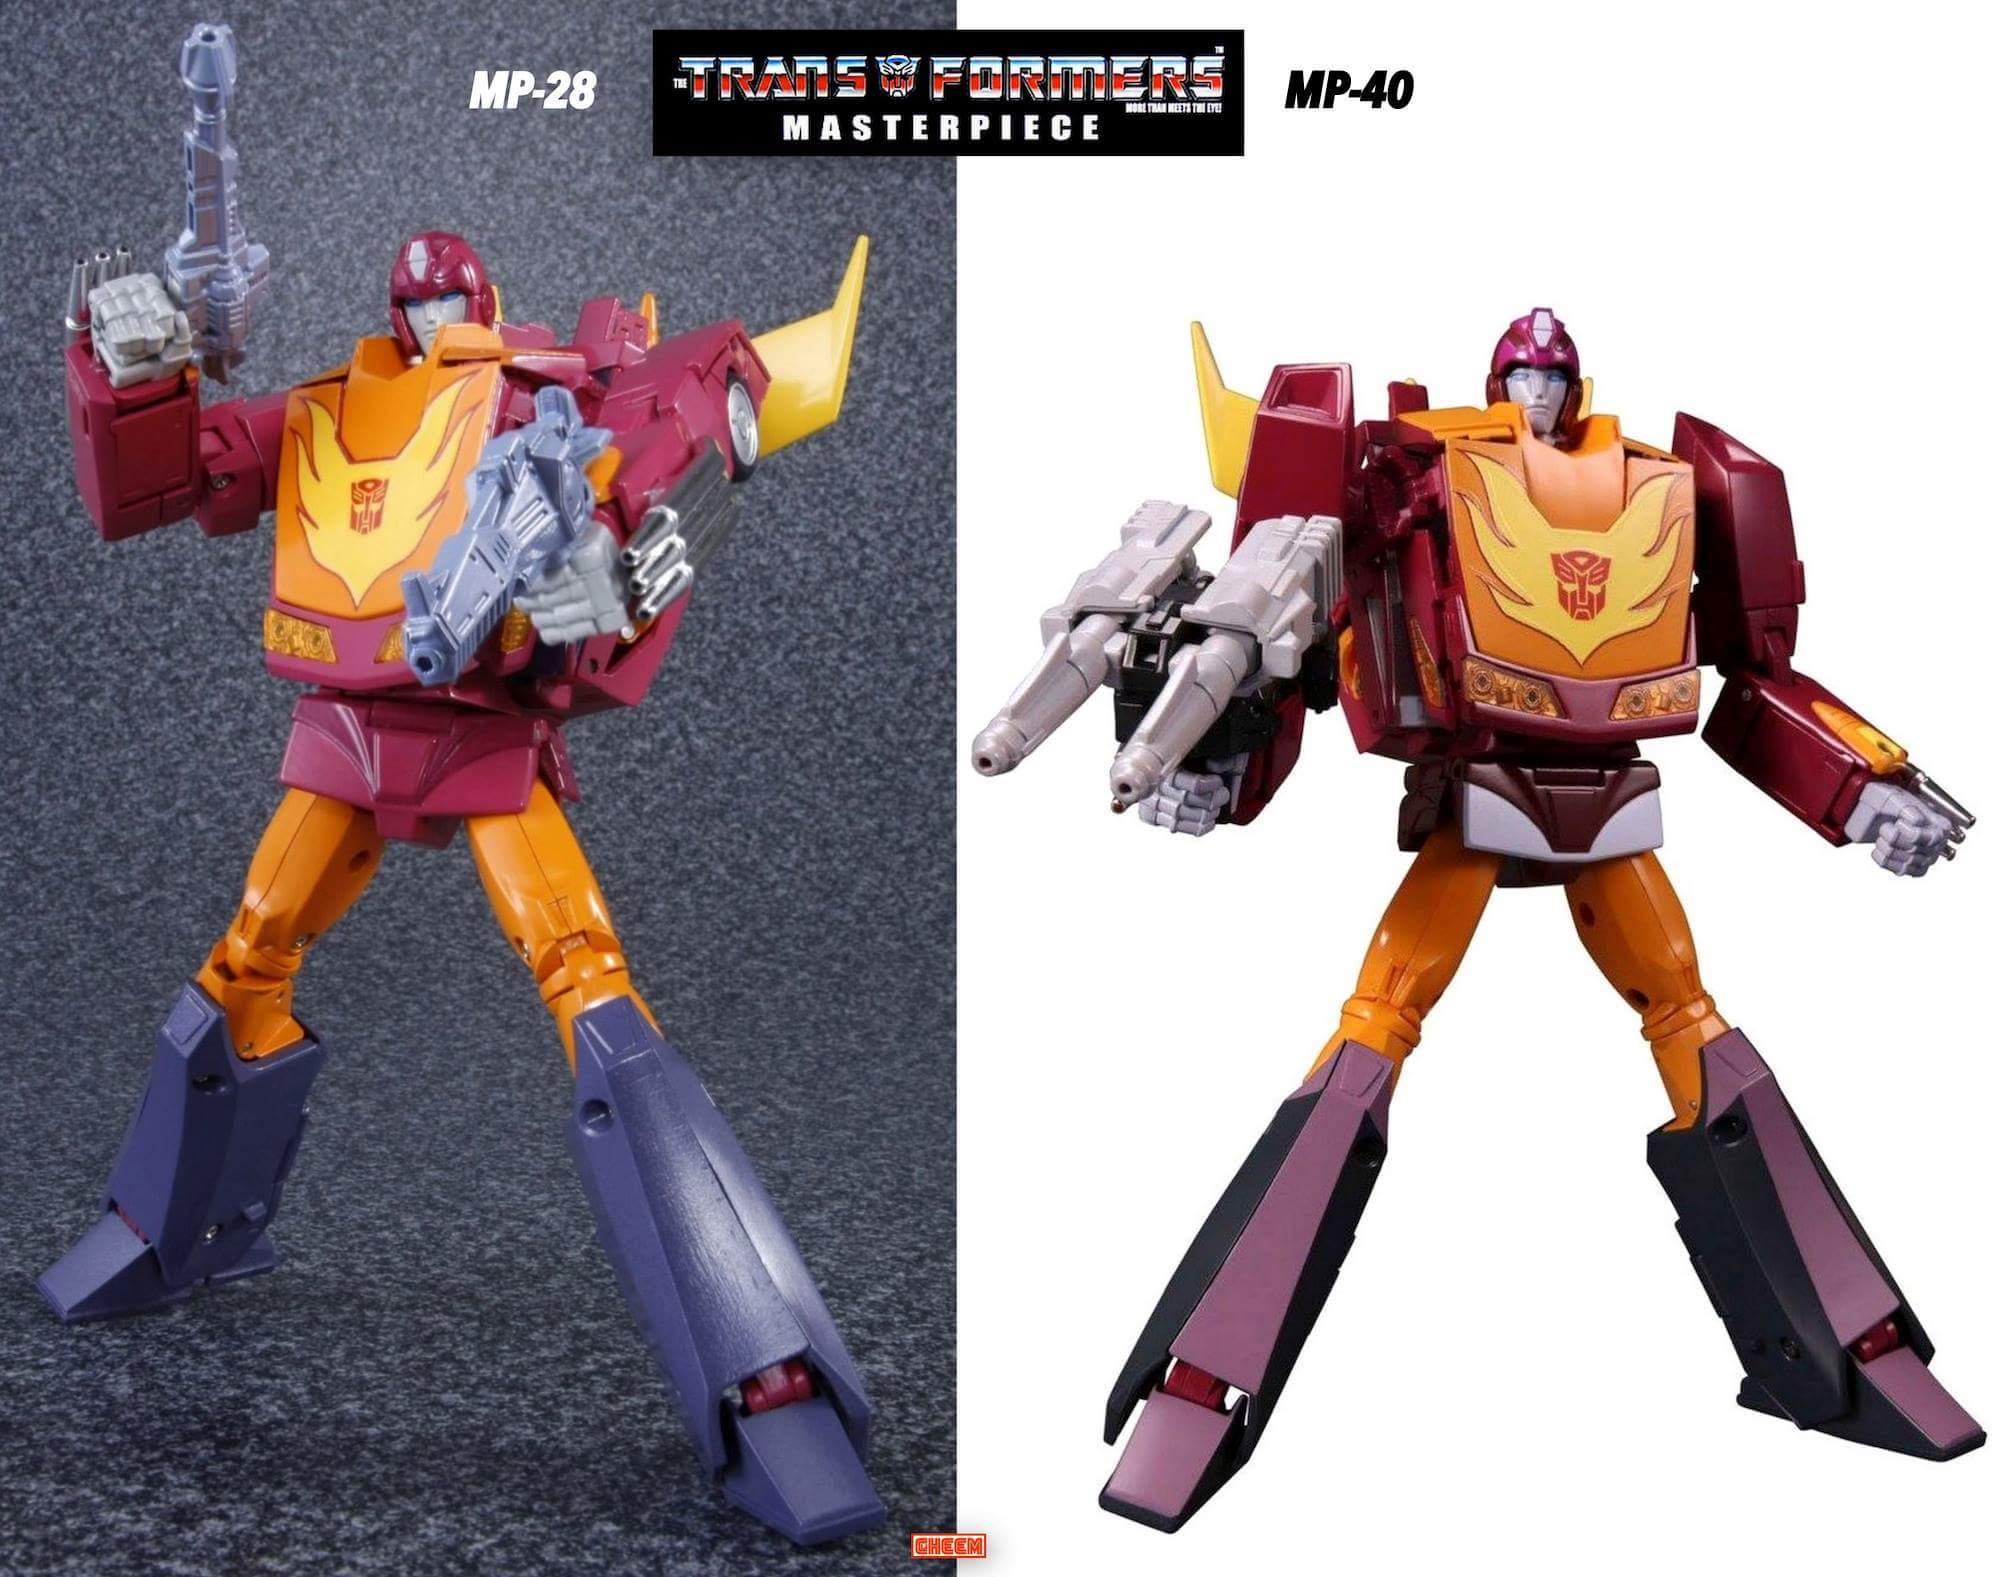 [Masterpiece] MP-40 Targetmaster Hot Rodimus (aka Hot Rod/Météorite) QGYKGZeJ